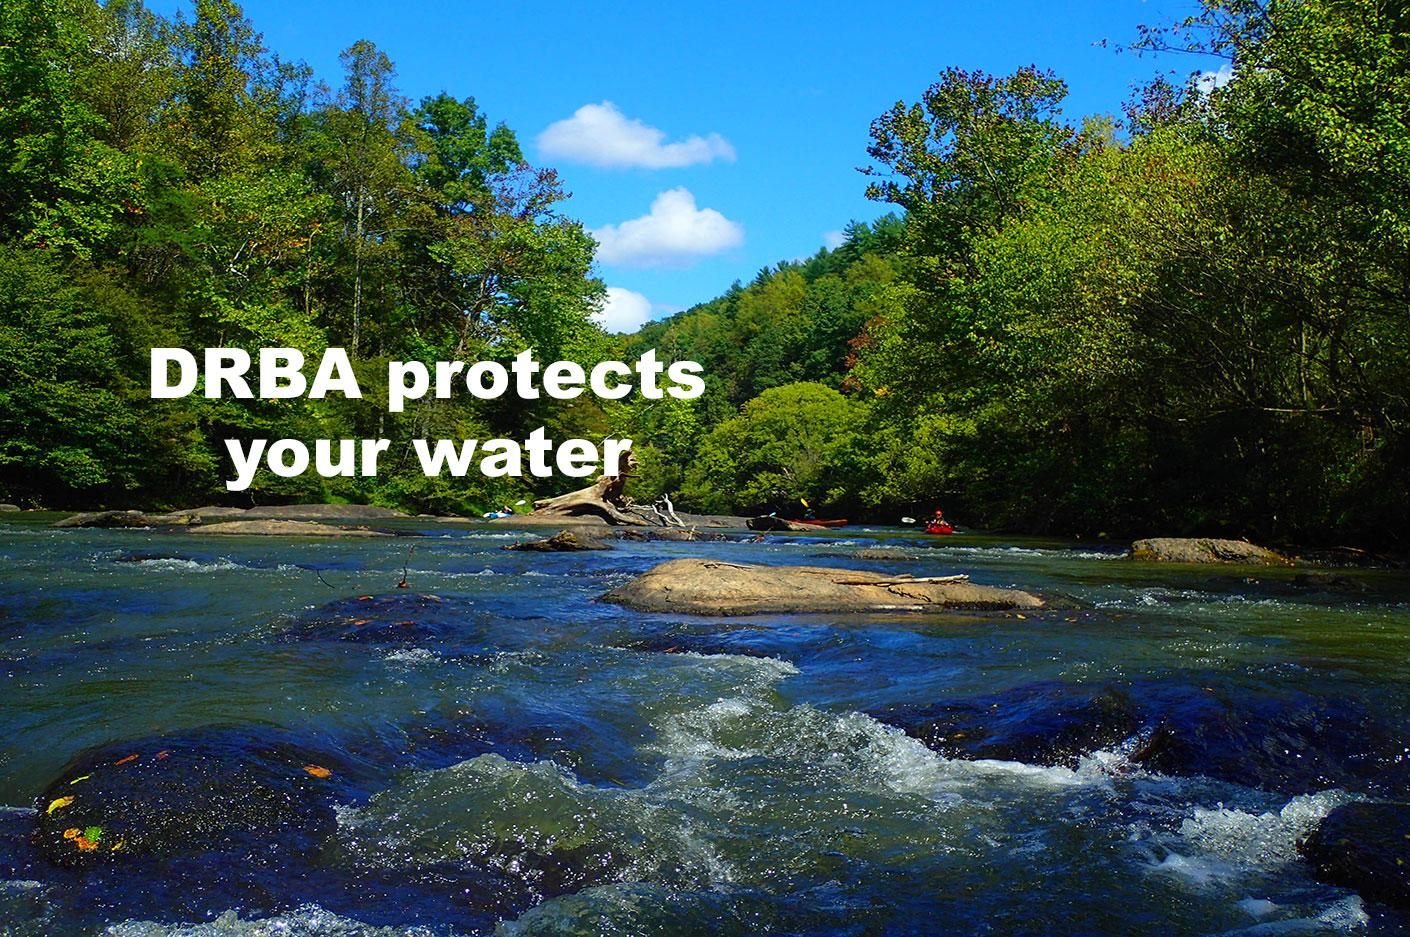 DRBA Protects Your Water